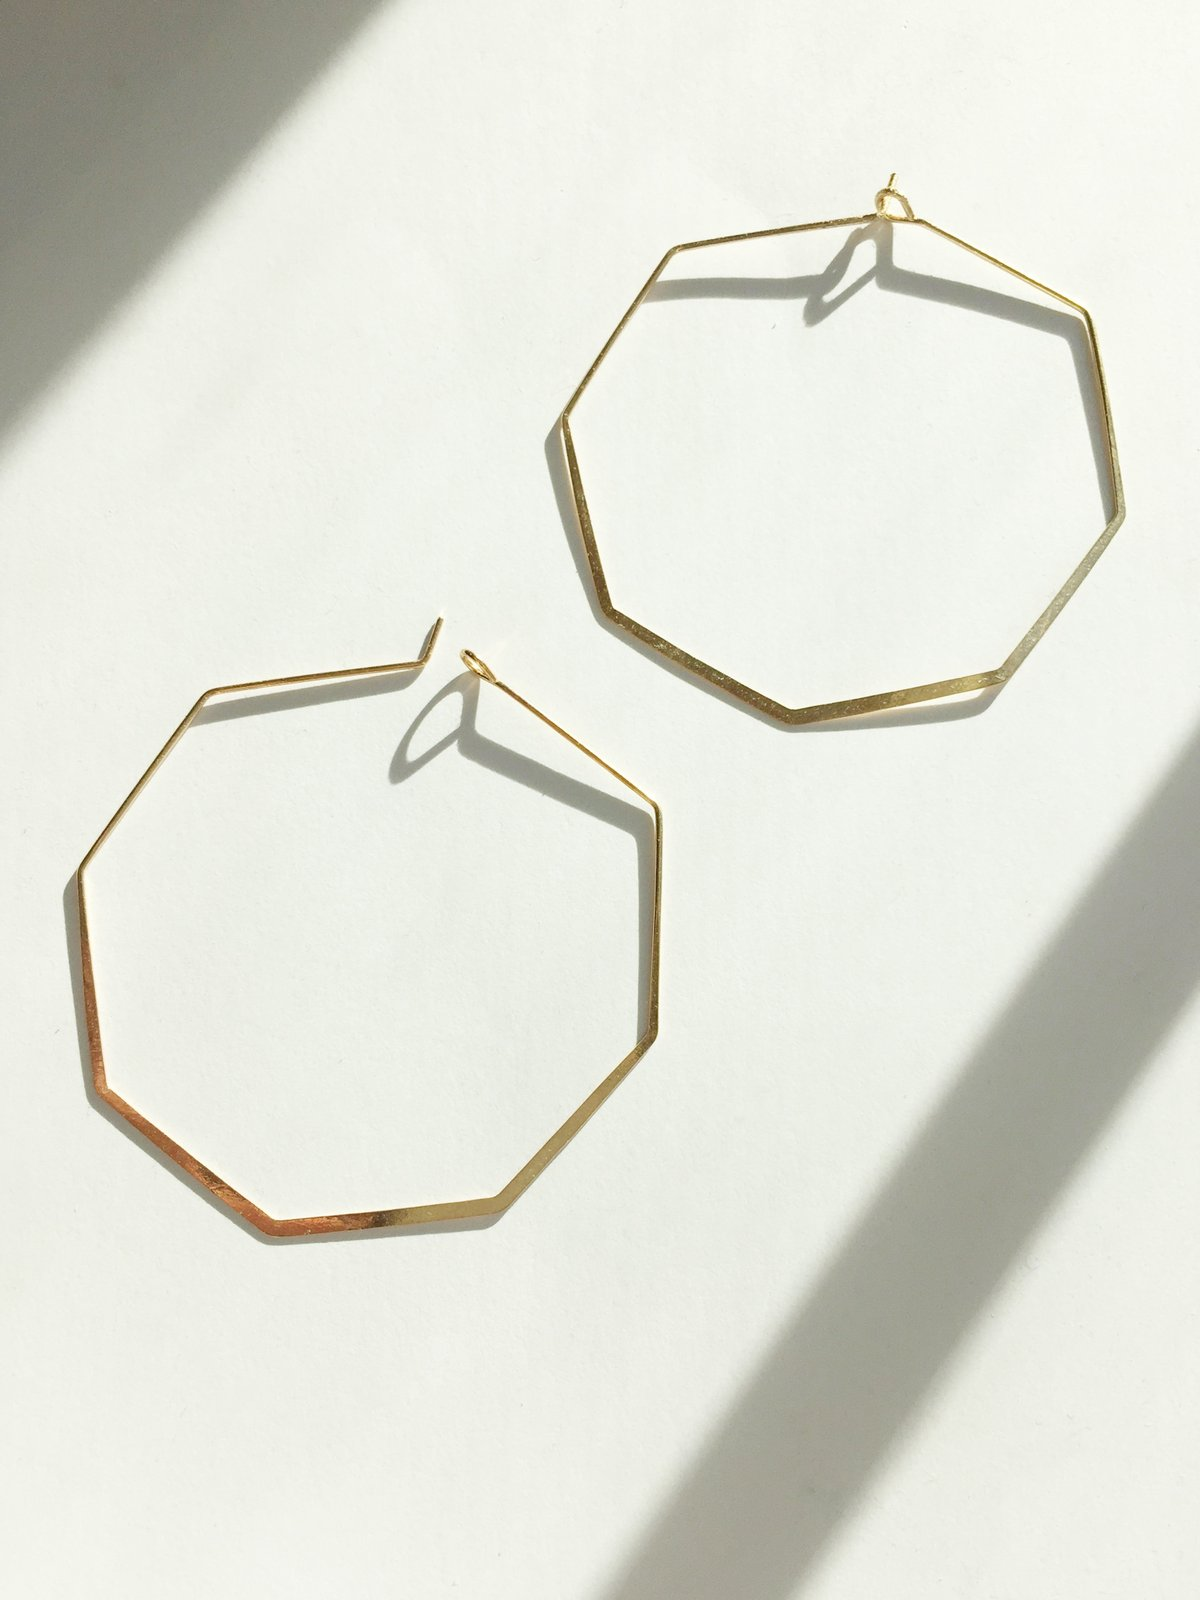 Ilya | Octagon Hoop Earrings | 18k Gold Plate | Janna Conner